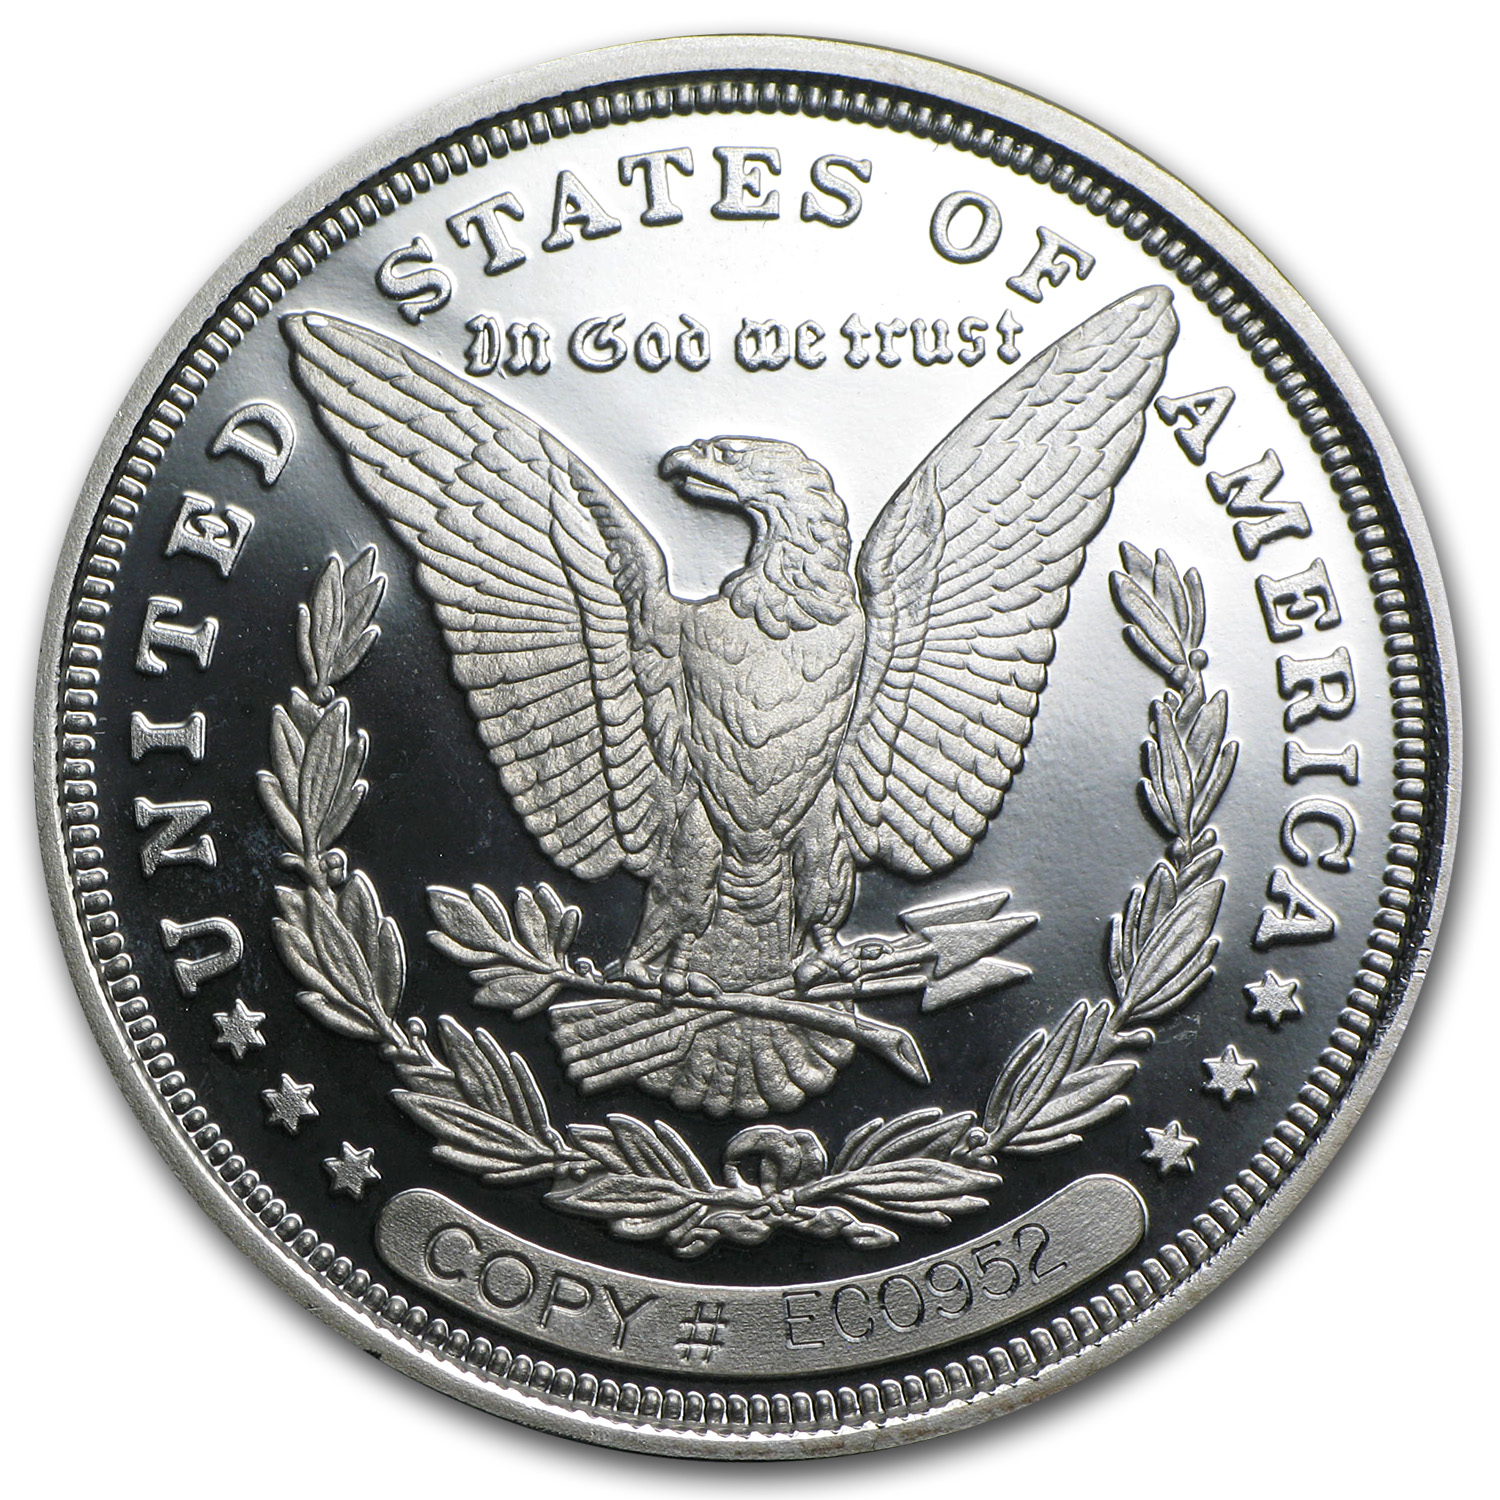 1 oz Silver Round - 1895 Morgan Dollar Proof (Replica)